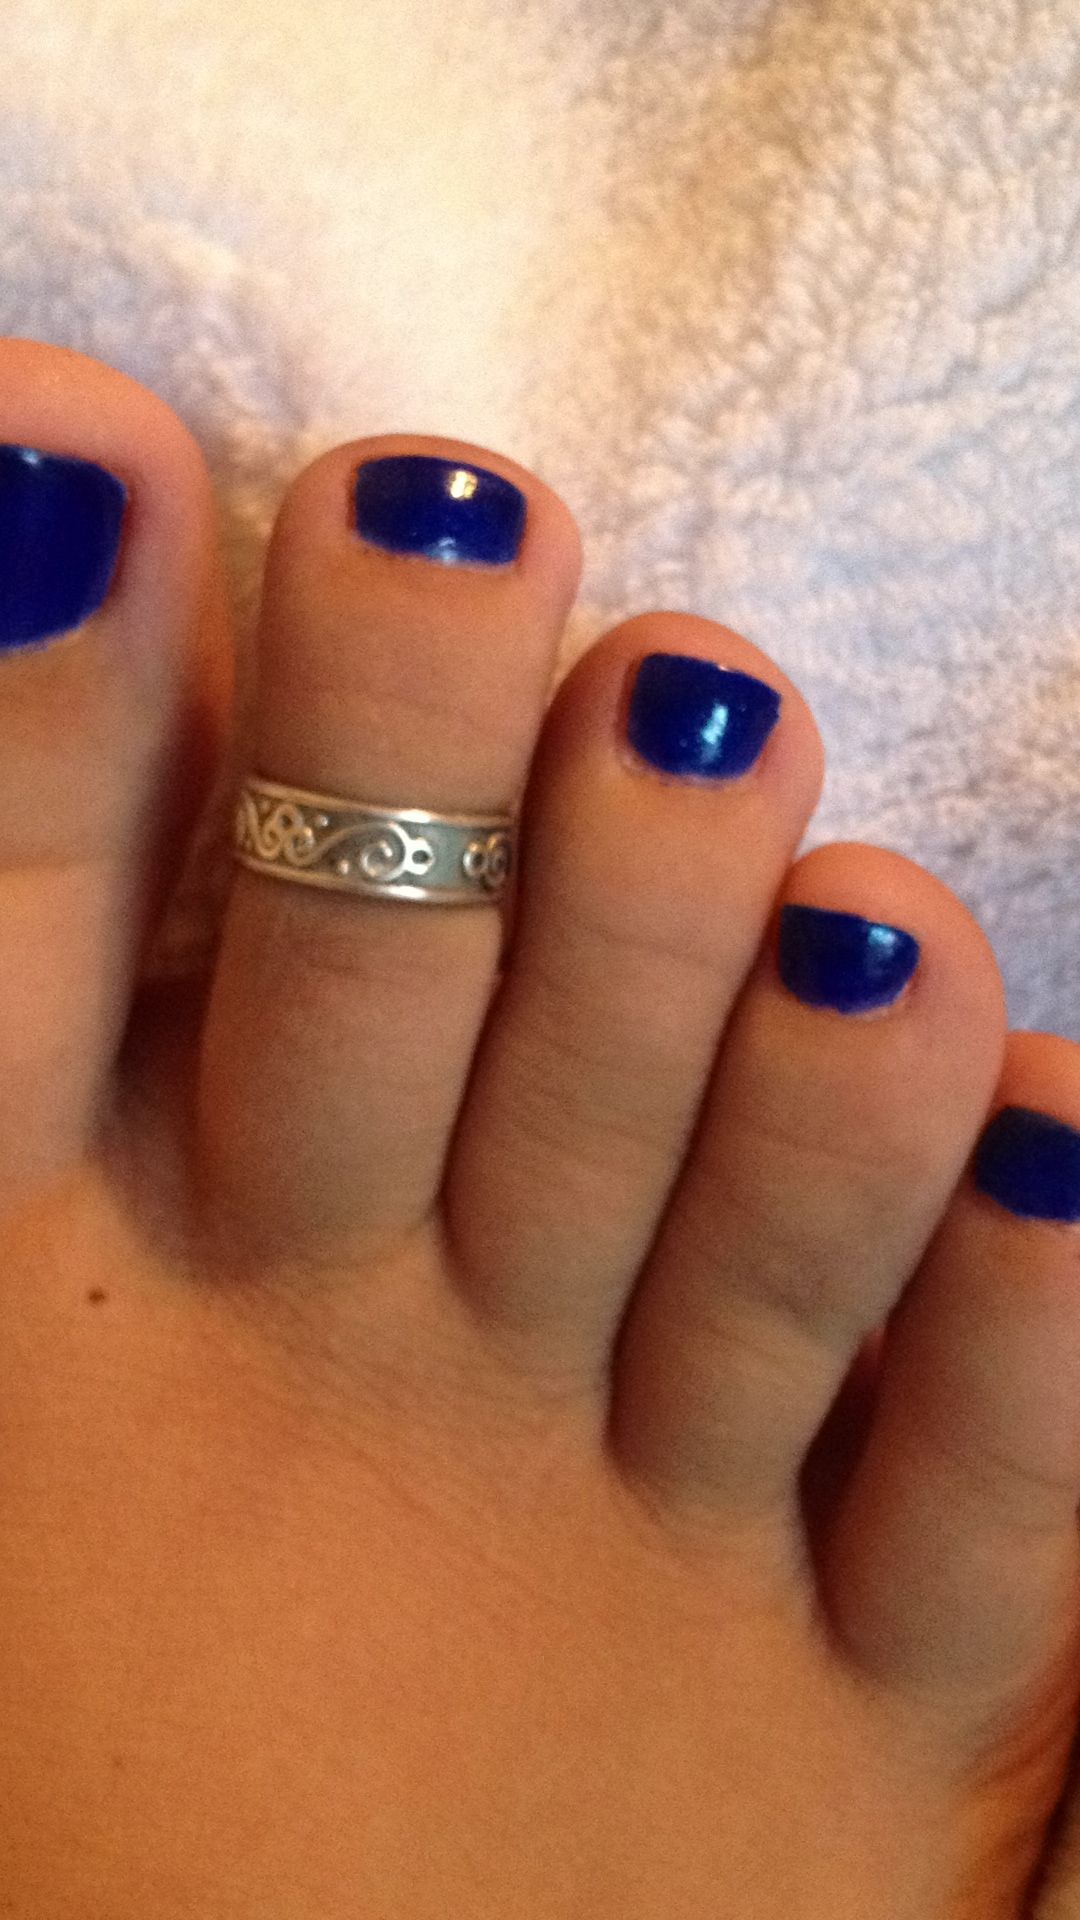 toes blue toenails toering cute feet | my girly stuff | Pinterest ...